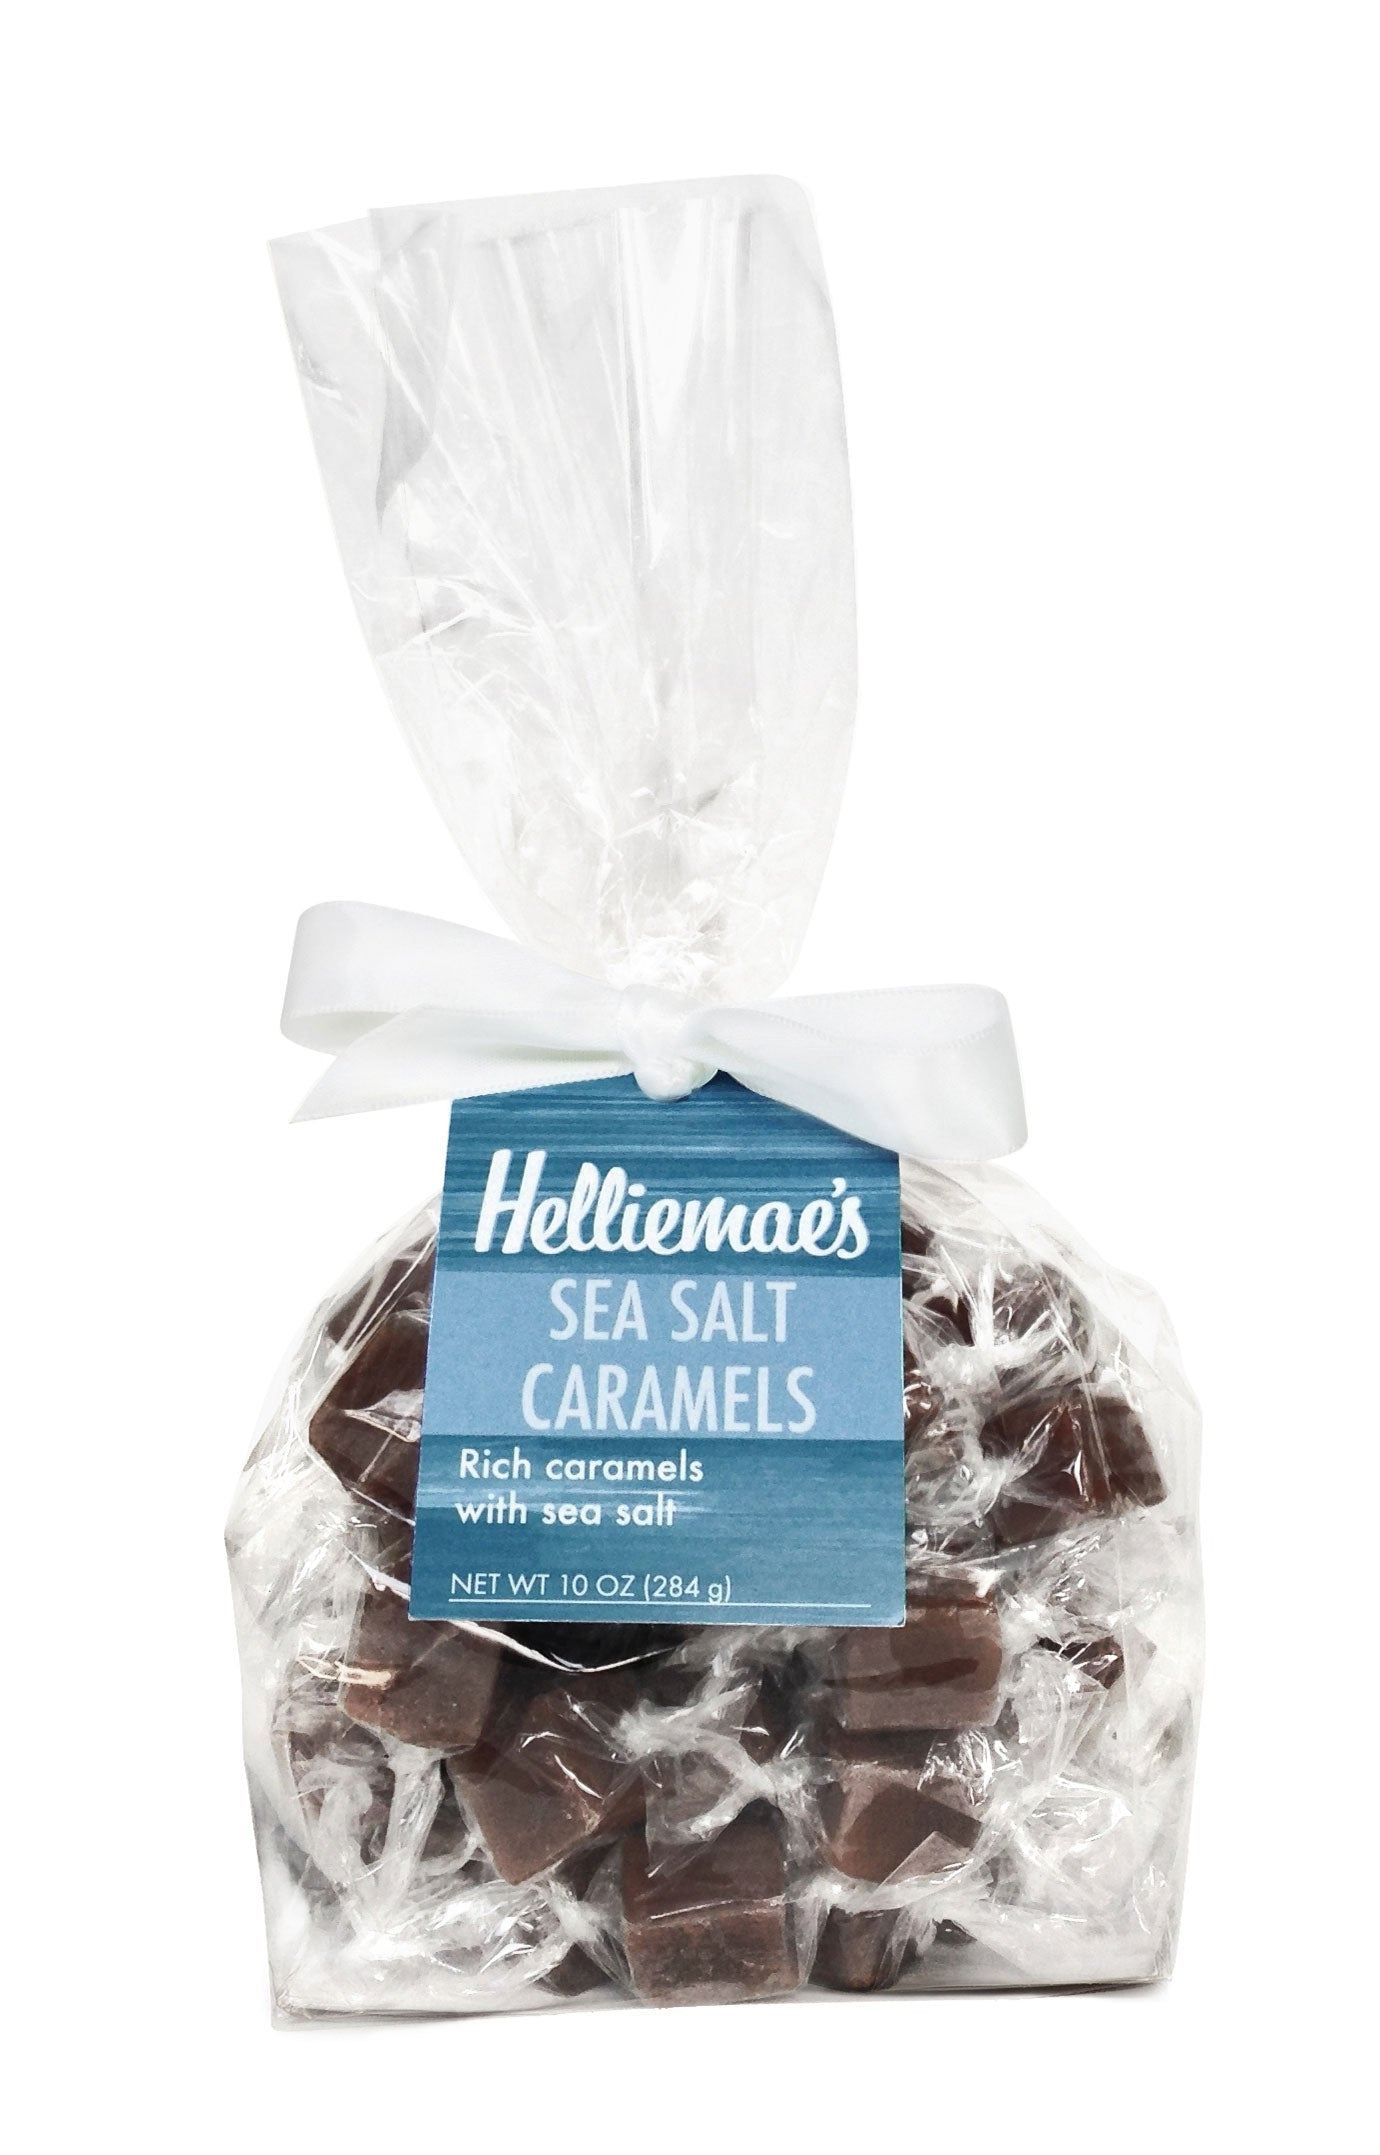 Helliemae's Sea Salt Caramels large gift bag, clear cello bag with gathered top, fastened with white satin ribbon and colorful blue hangtag, with effect of milk paint on a barn wall.